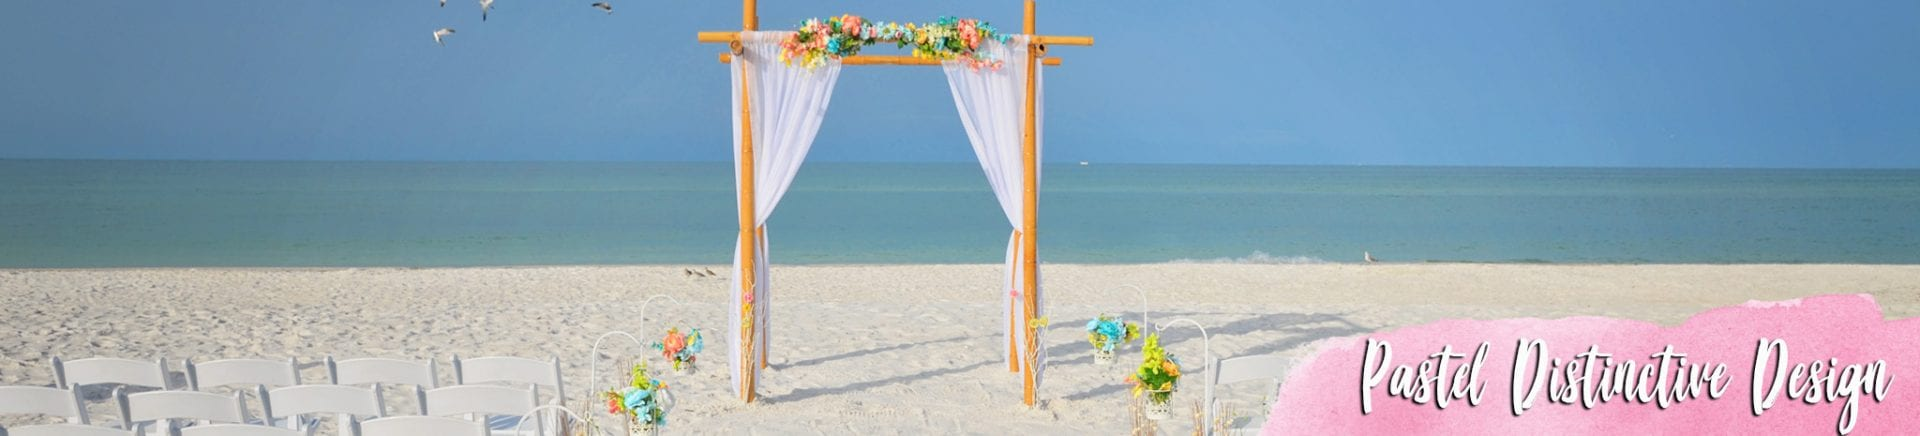 Pastel tropical flowers on wedding arch at beach